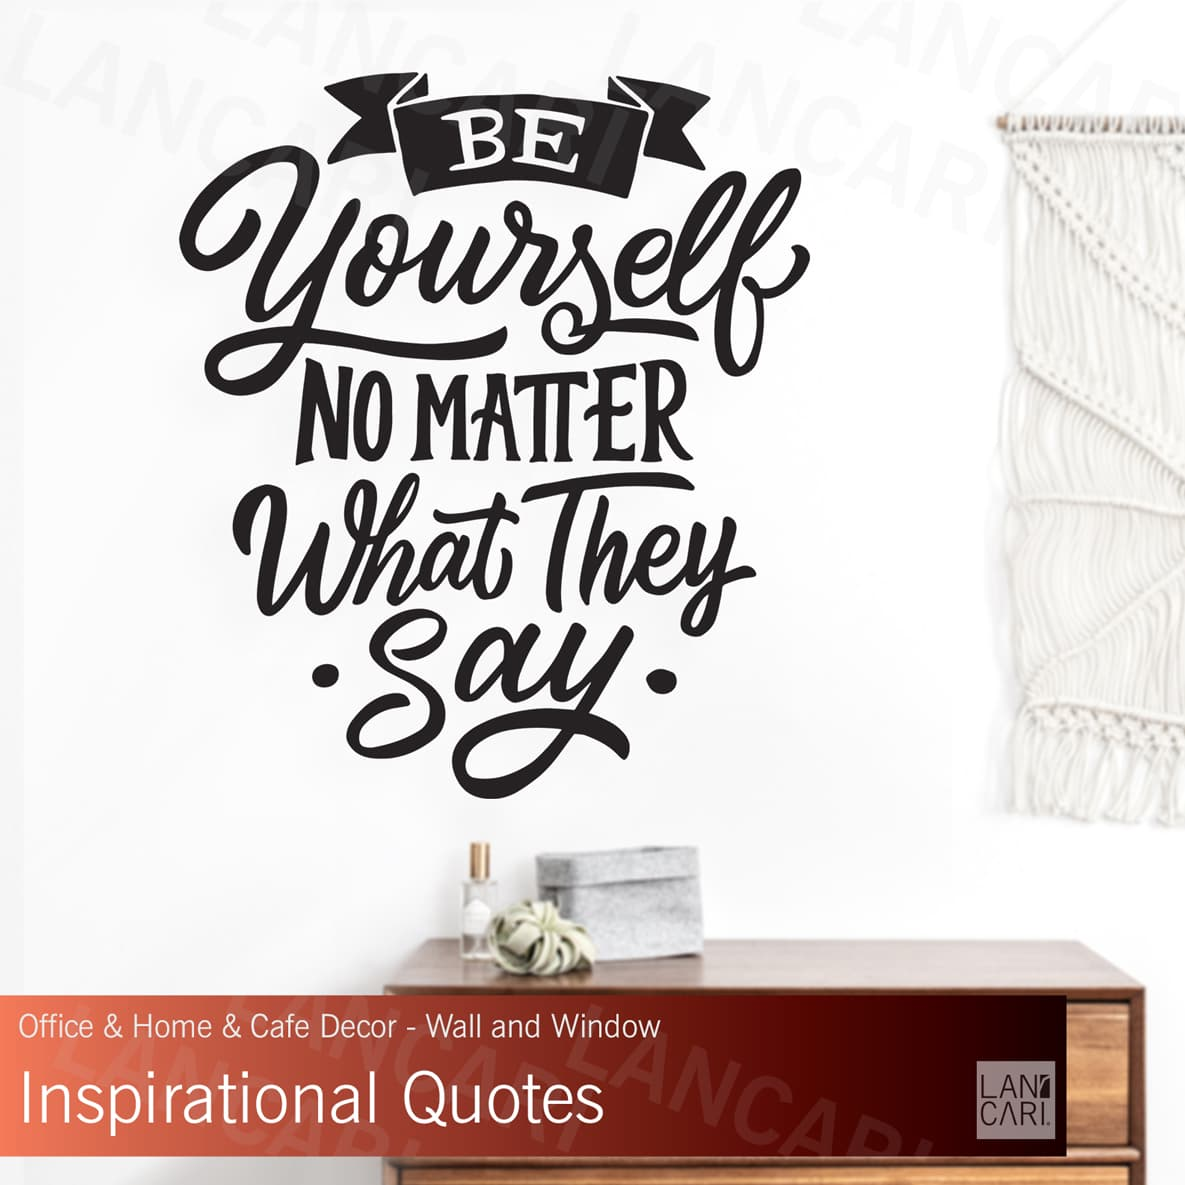 Unduh 8800 Koleksi Background Putih Quotes Gratis